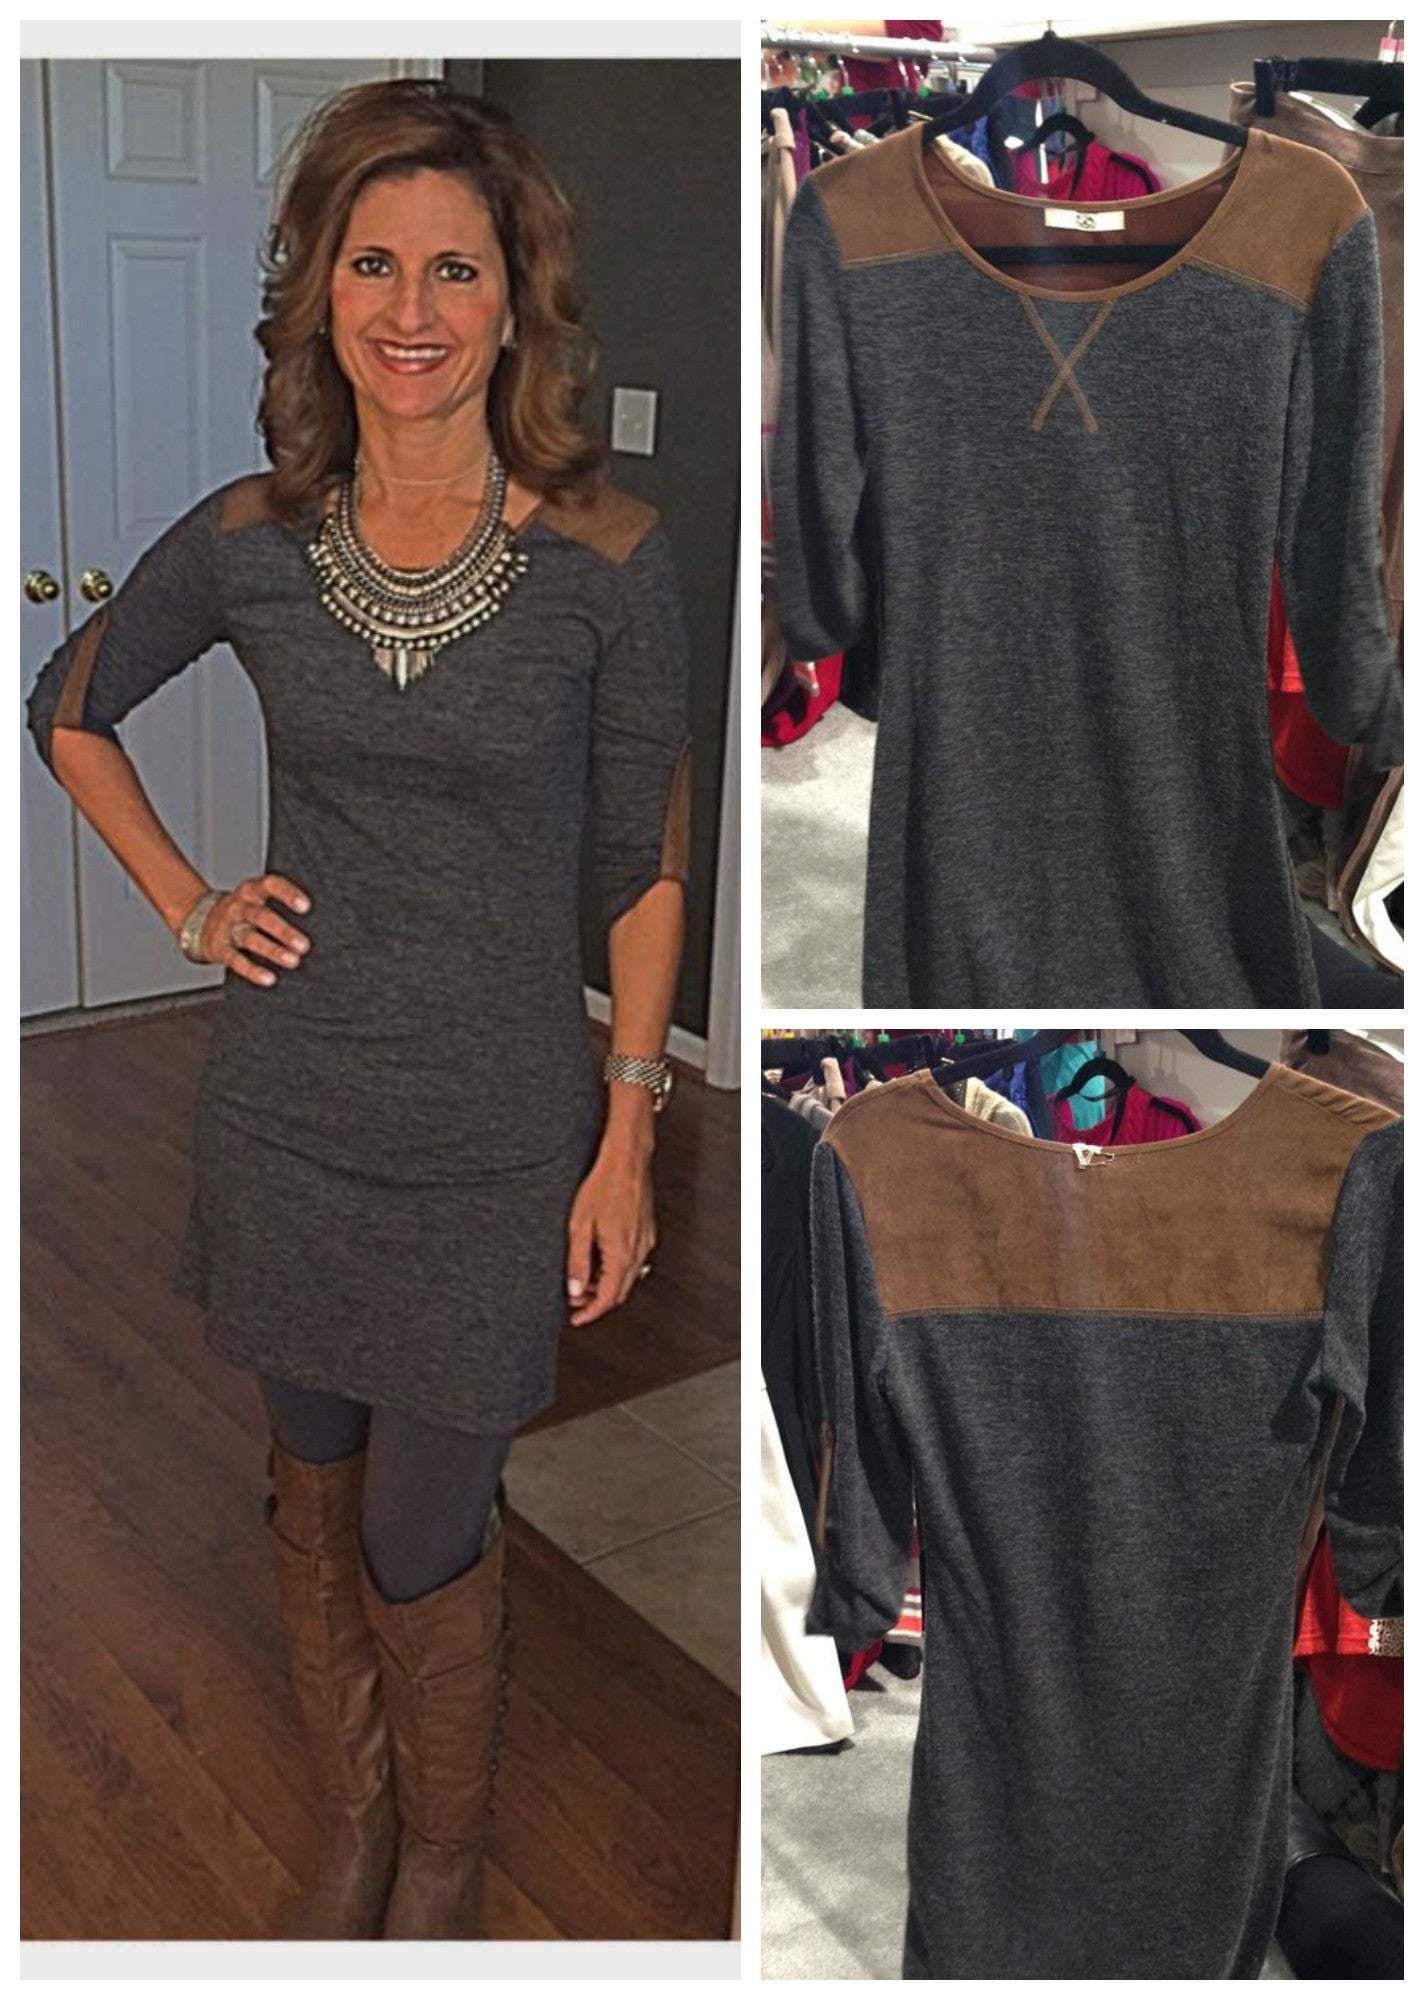 39654ad9165 Charcoal Grey Sweater Dress with Suede Pocket and Elbow Detail - FINAL  CLEARANCE